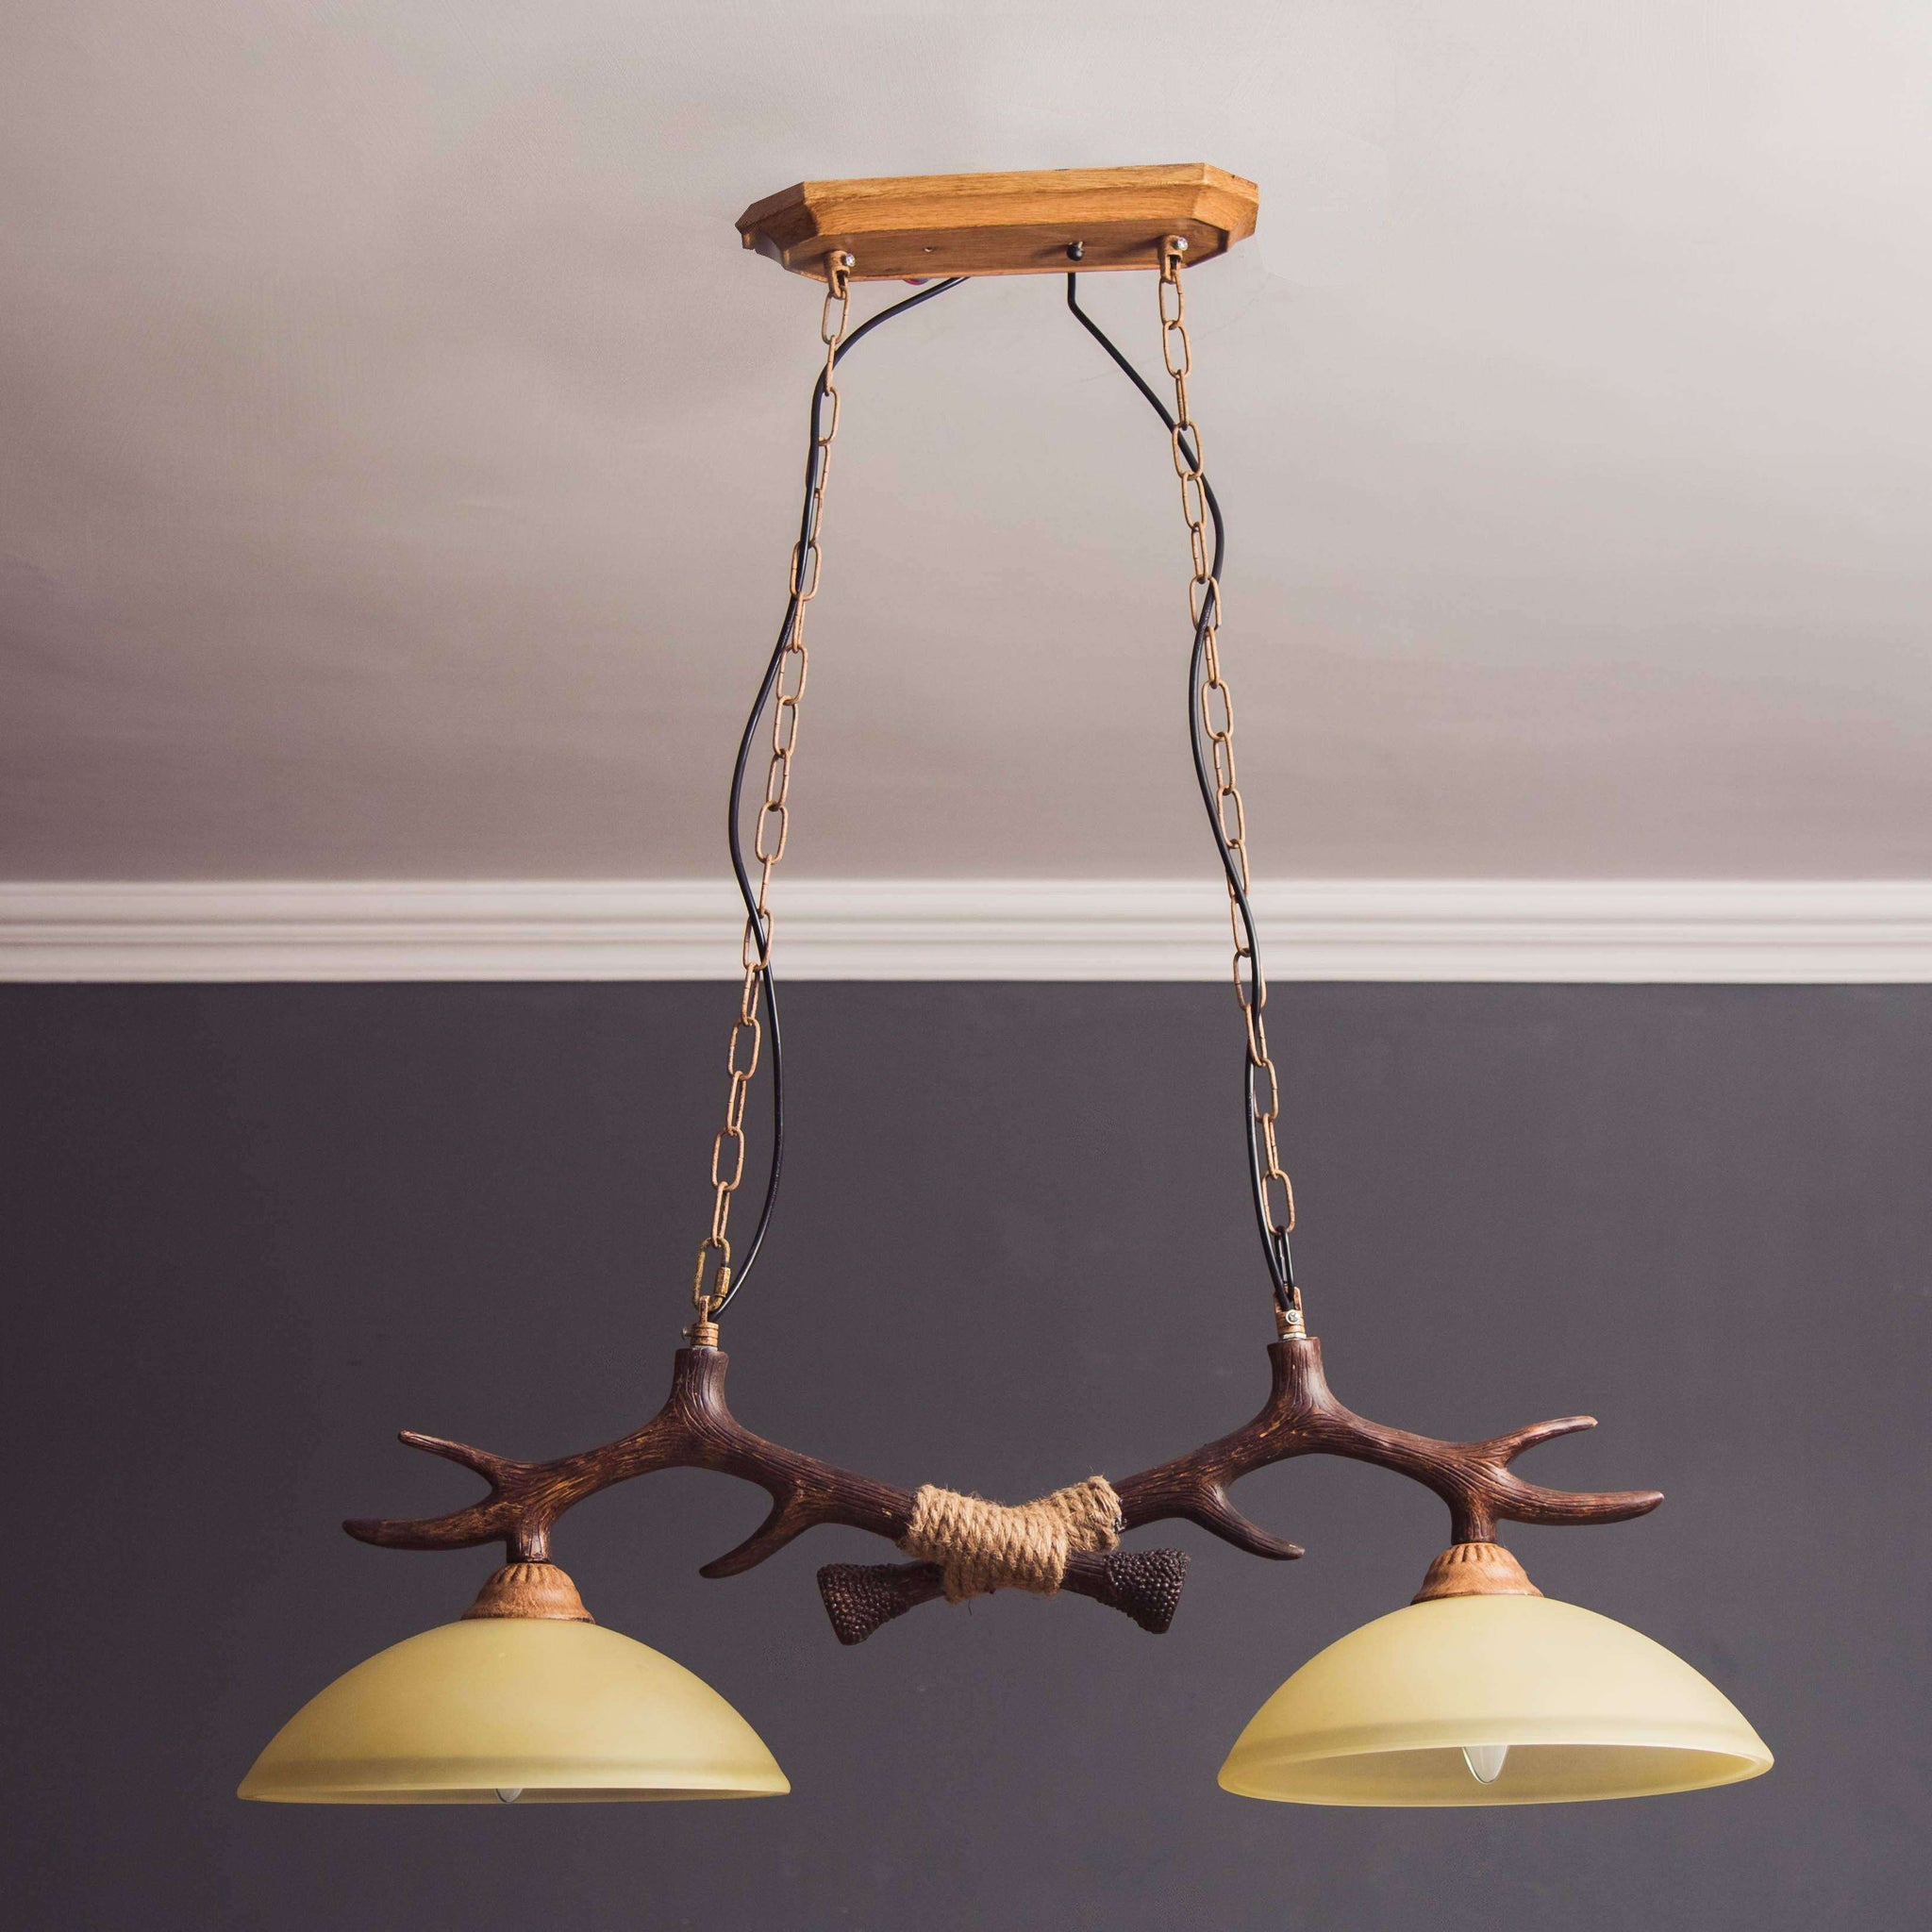 The antler ceiling light thedecorkart the antler ceiling light mozeypictures Choice Image